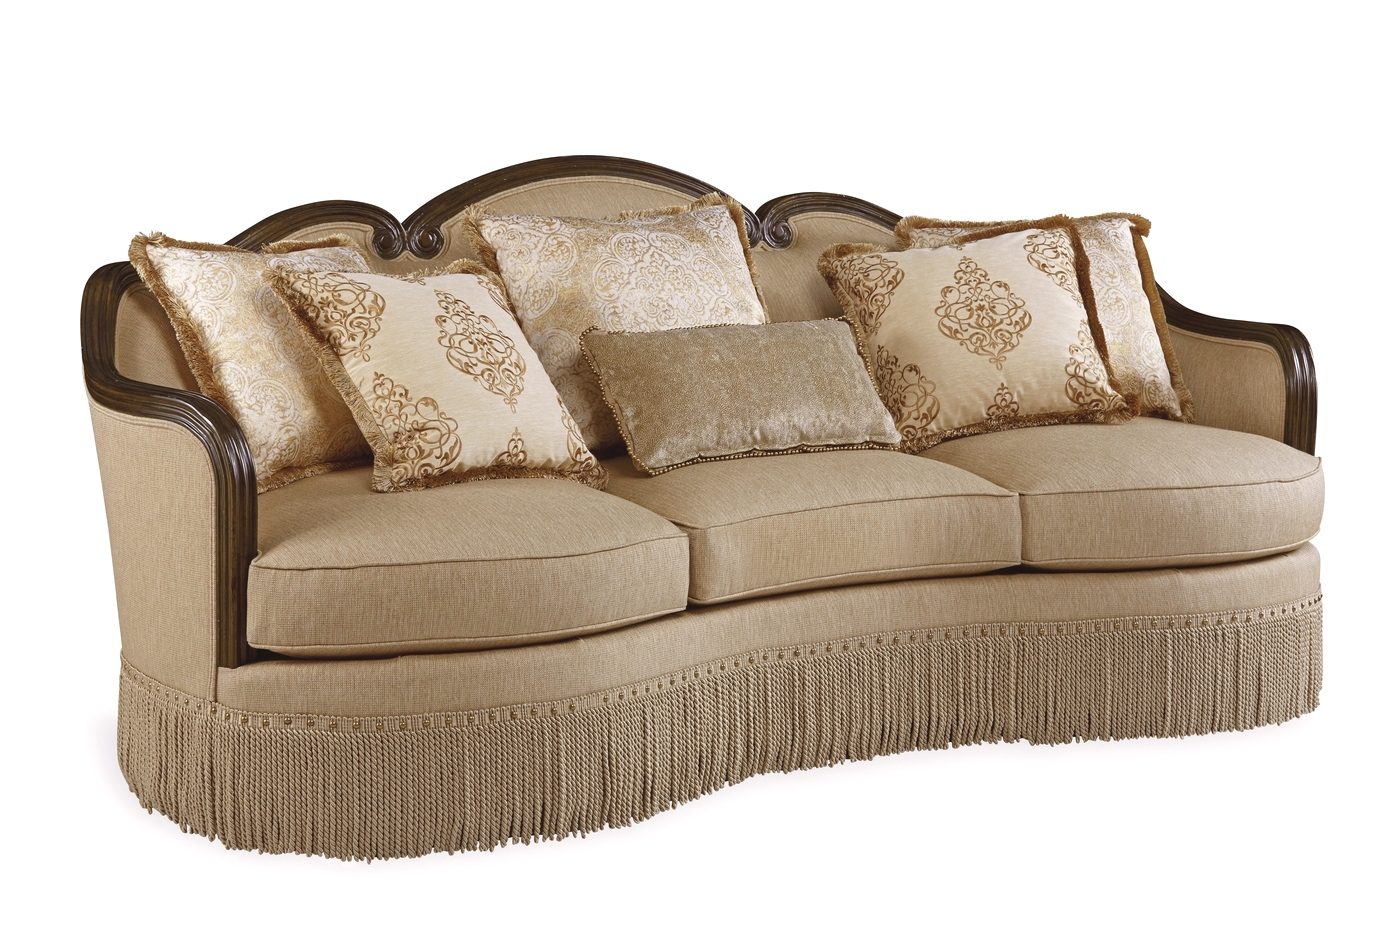 Giovanna european golden quartz curved sofa with carved